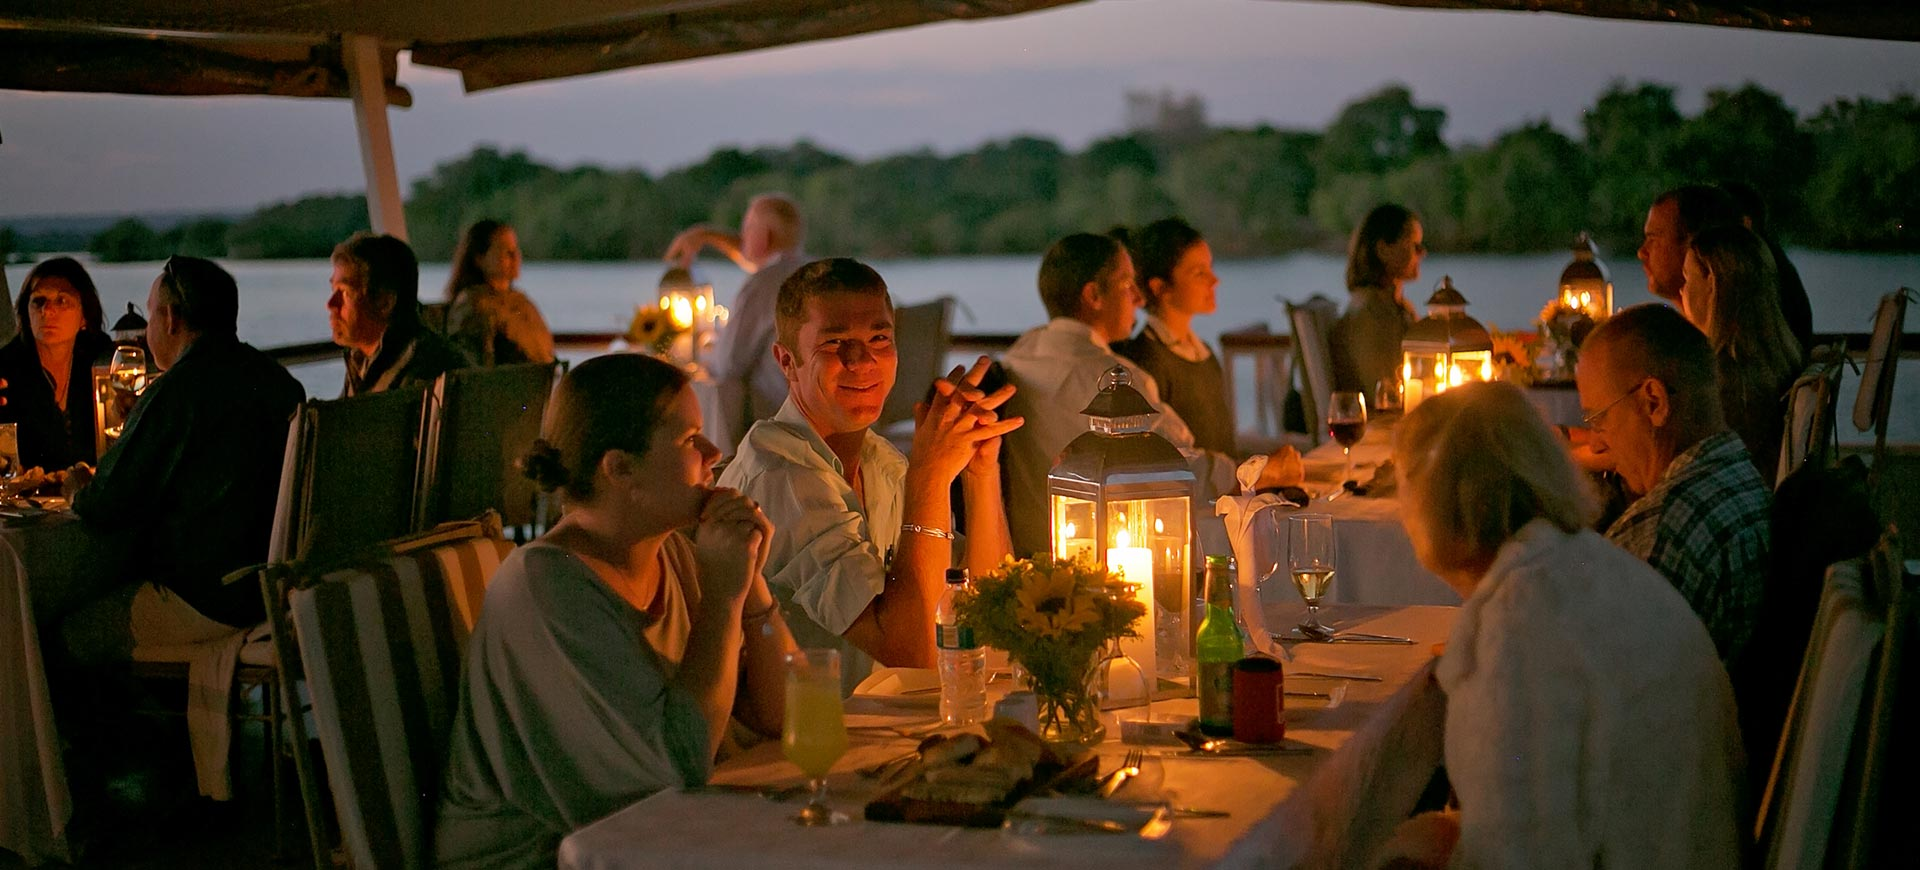 Victoria Falls Conference Dinner-Cruise